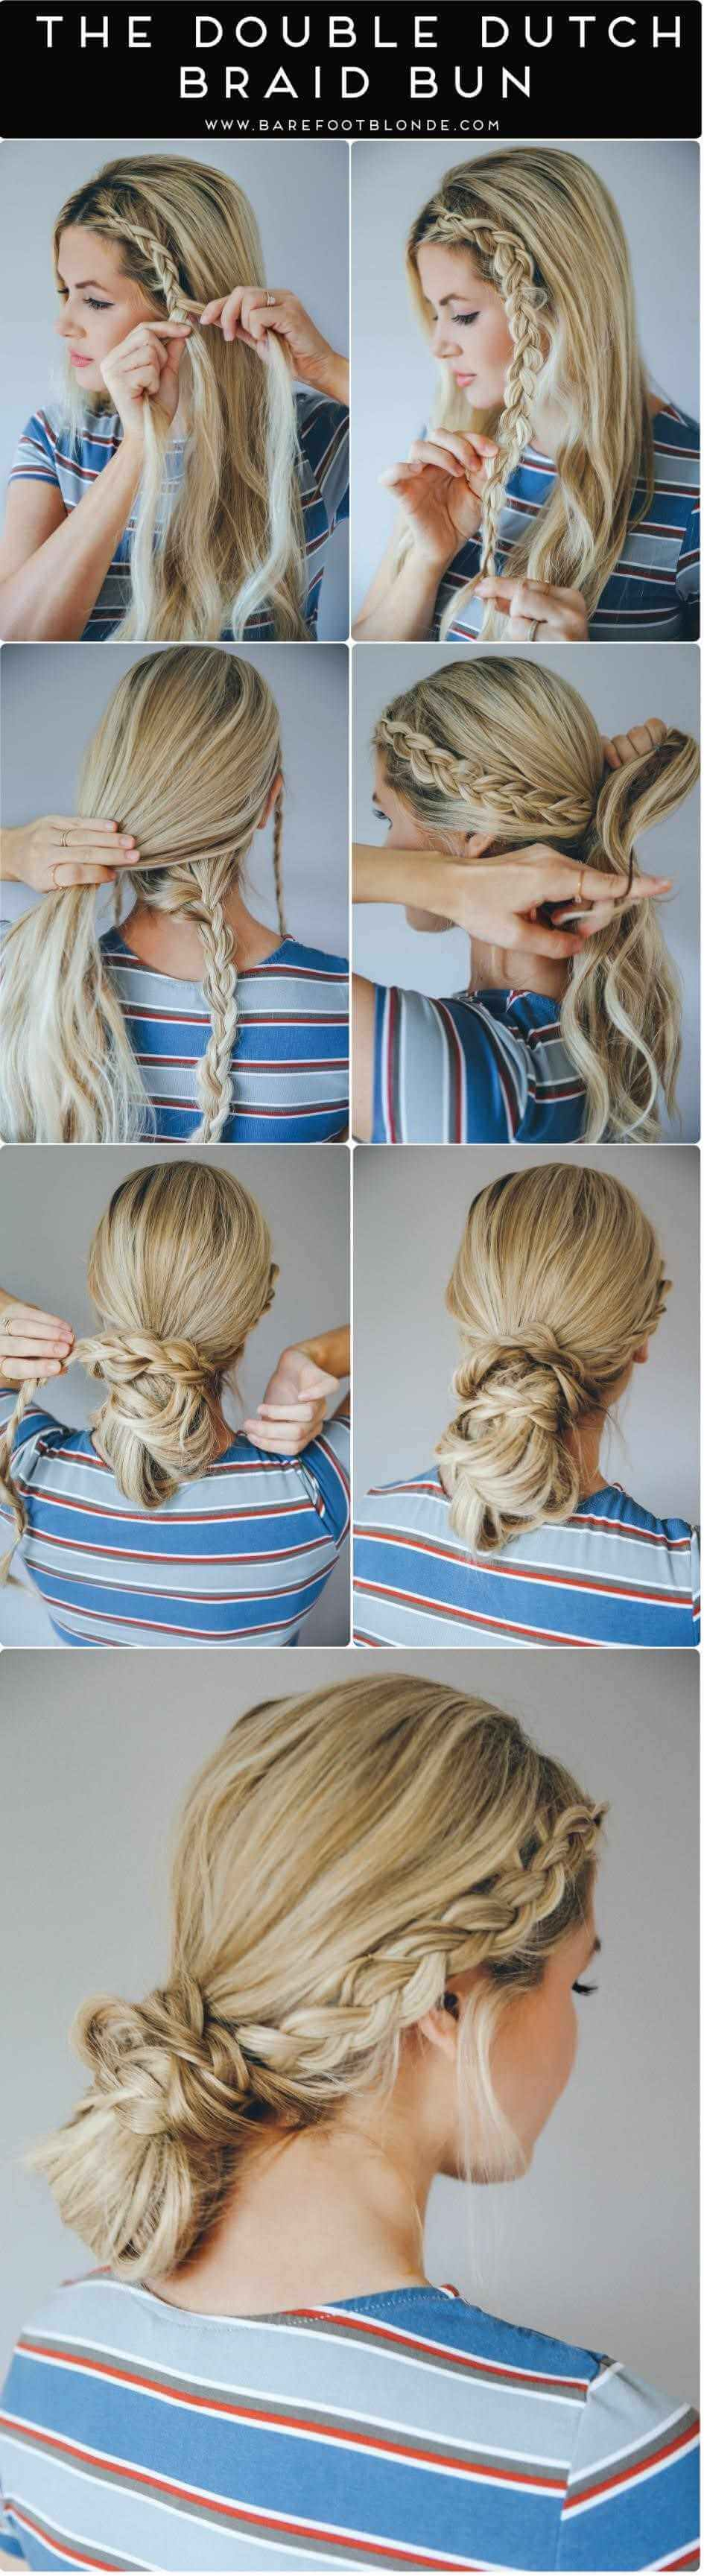 Quick and Elegant French Braid Bun